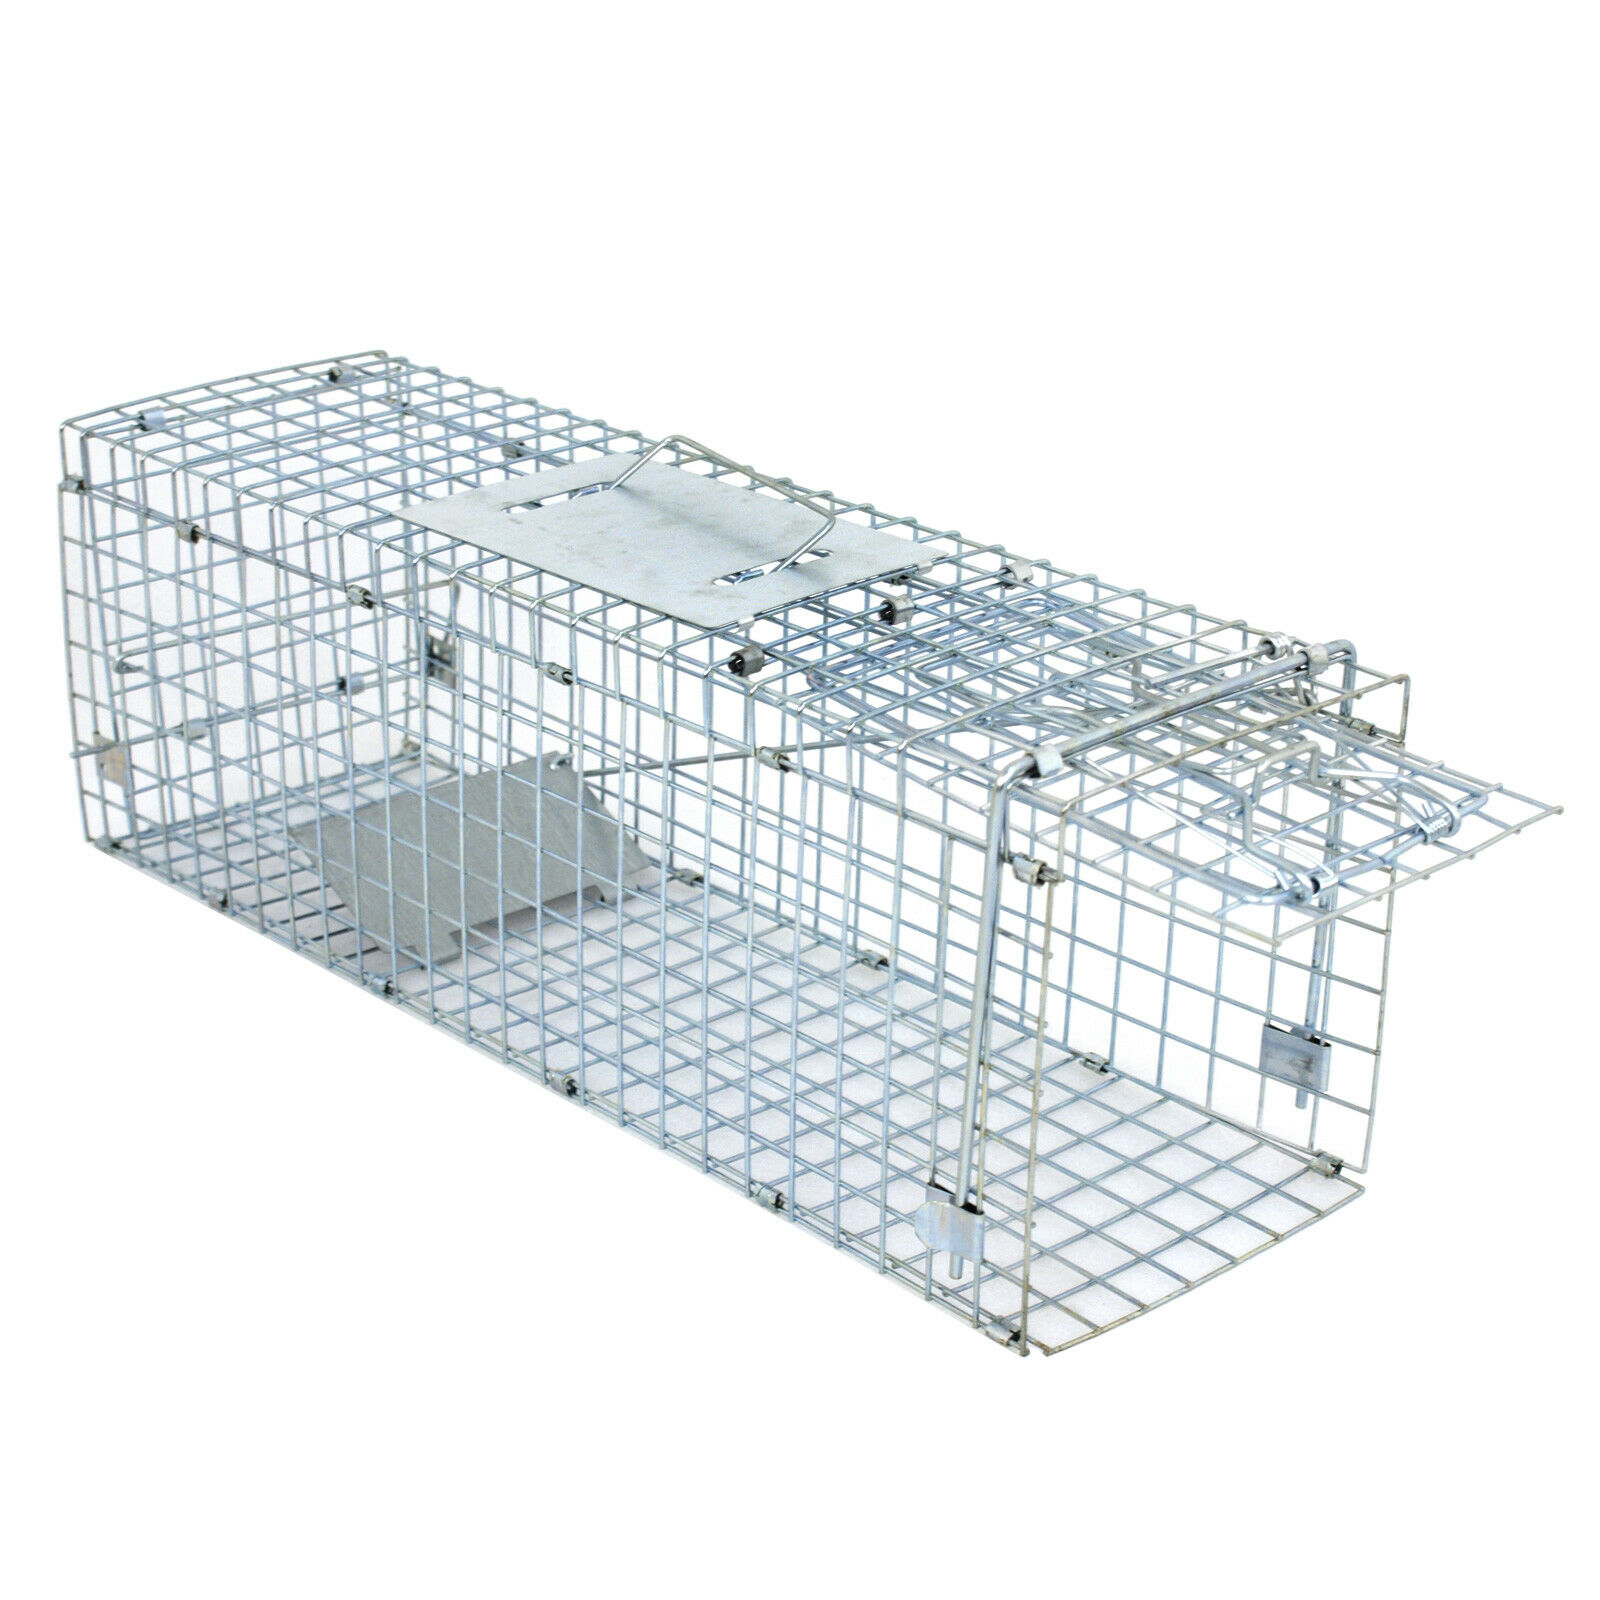 """Details about  /Live Animal Trap Extra Large Rodent Cage Garden Rabbit Raccoon Cat 24/""""X8/""""X"""